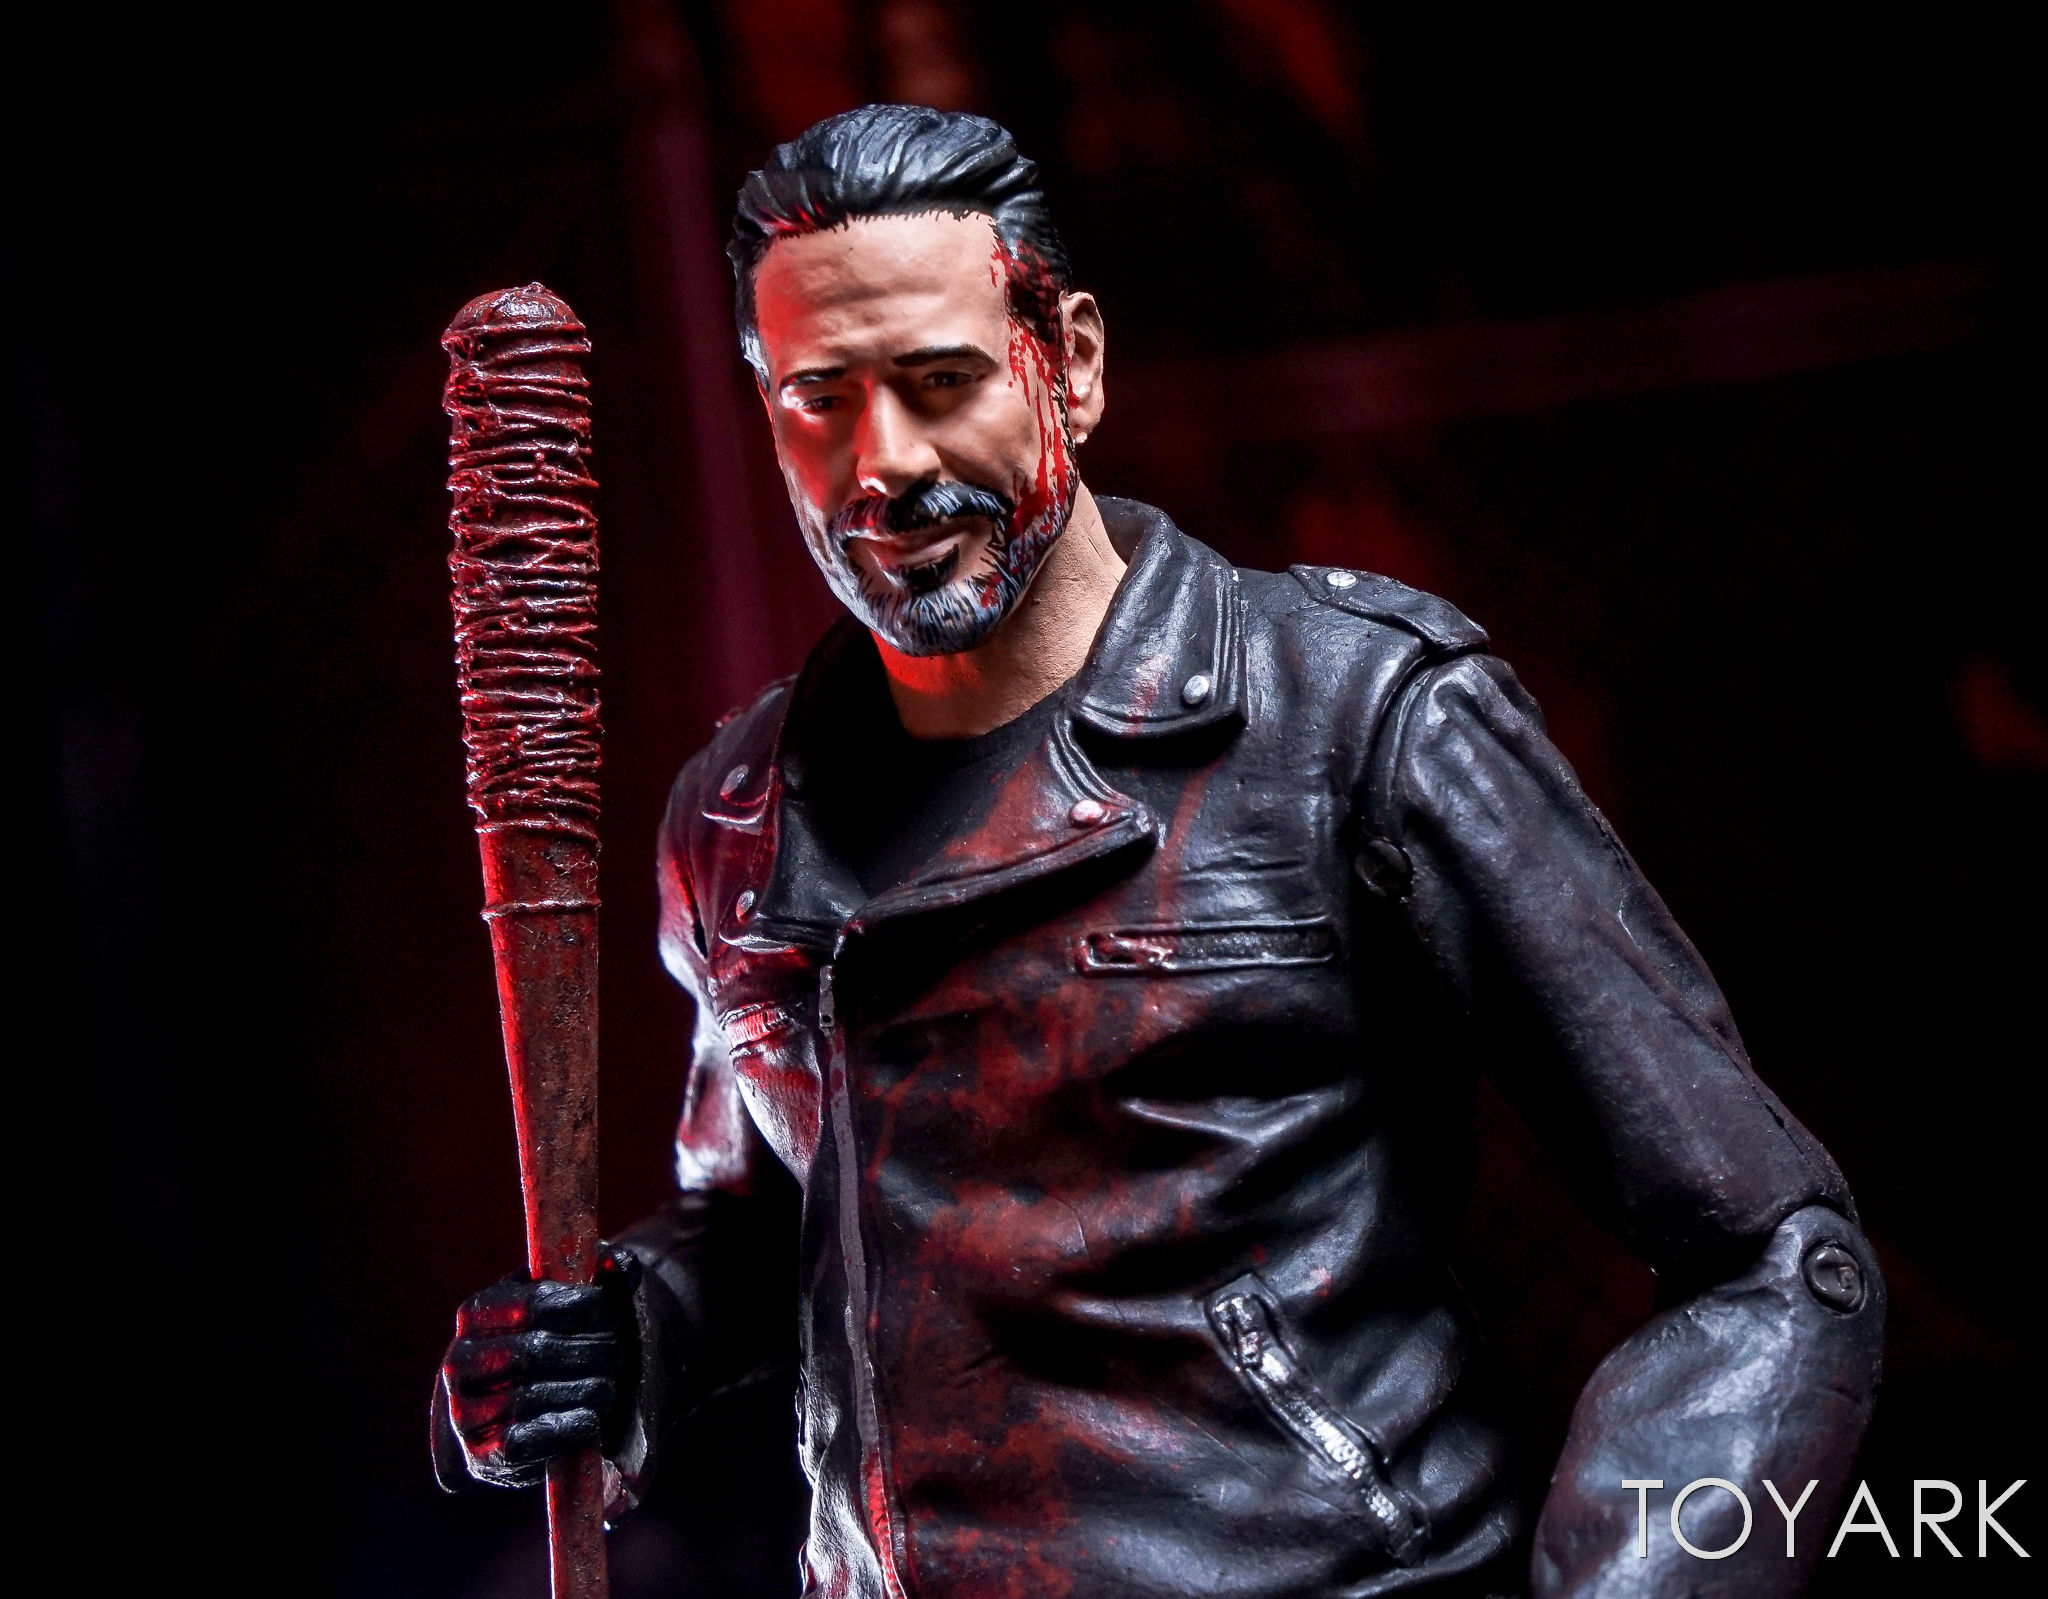 http://news.toyark.com/wp-content/uploads/sites/4/2017/05/McFarlane-Walking-Dead-Negan-042.jpg